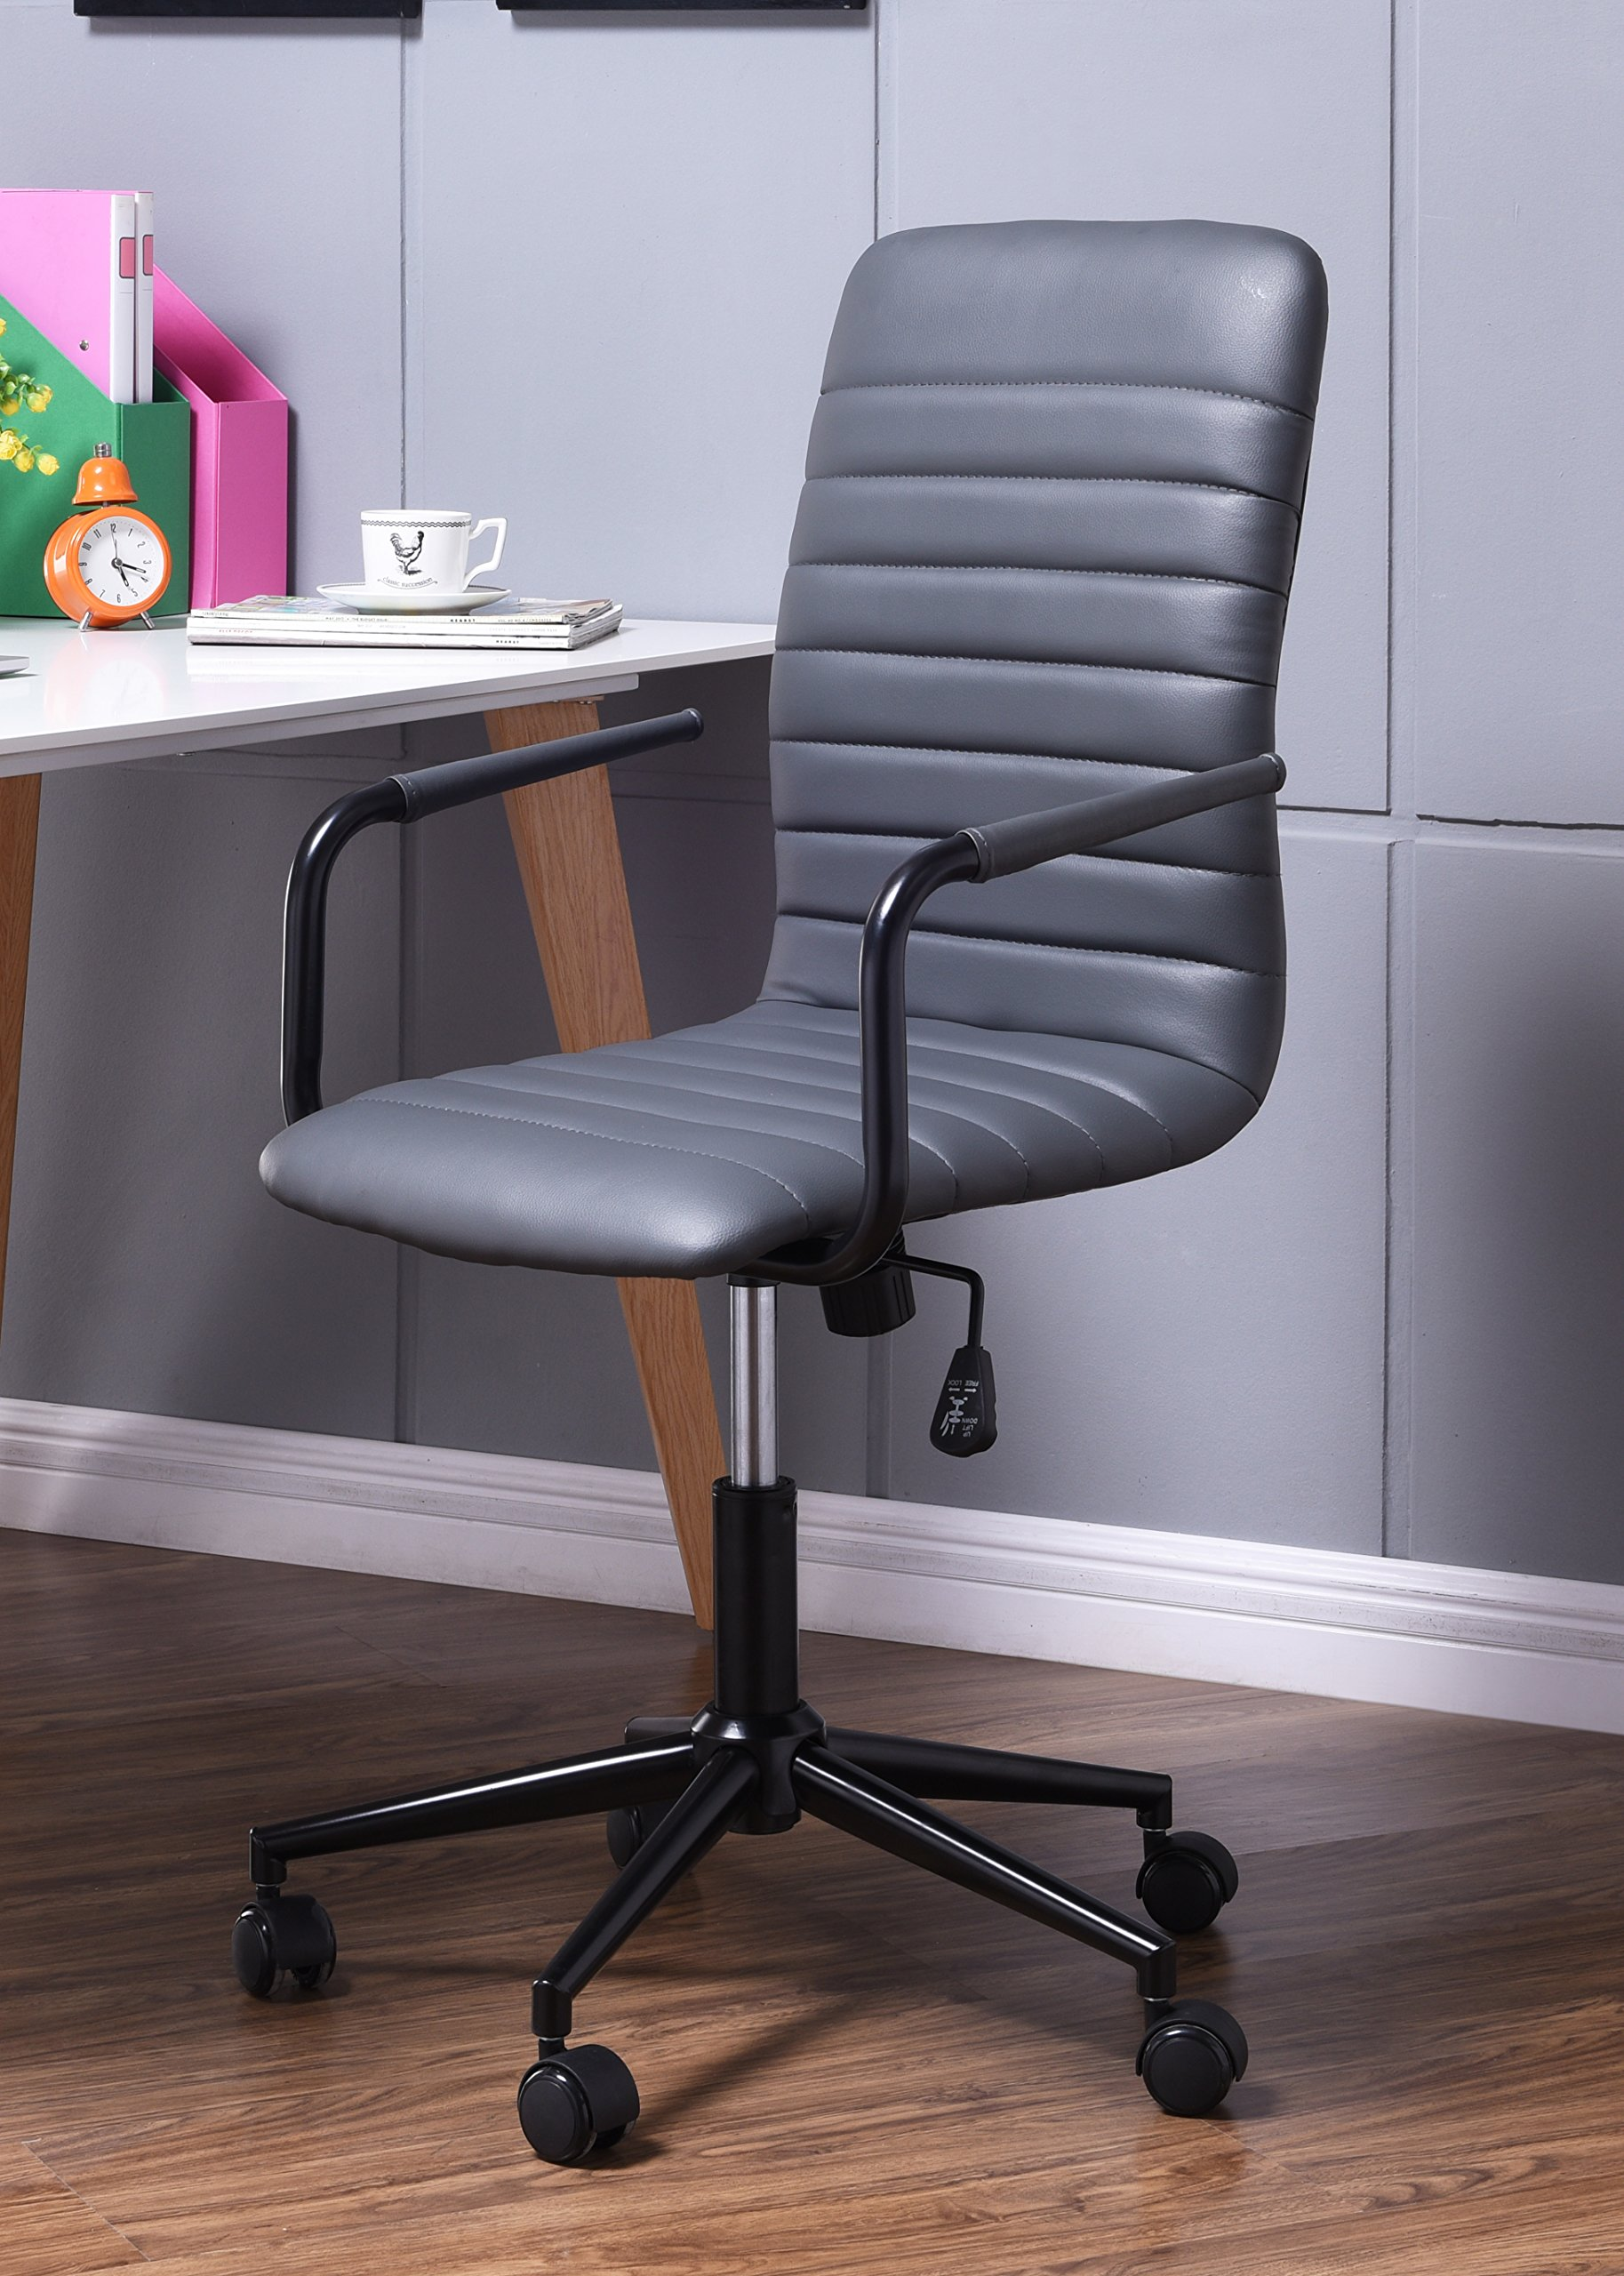 BestOfficeChoice 18637-GY Striped Leather Office Desk Chair, Mid Back, Gray